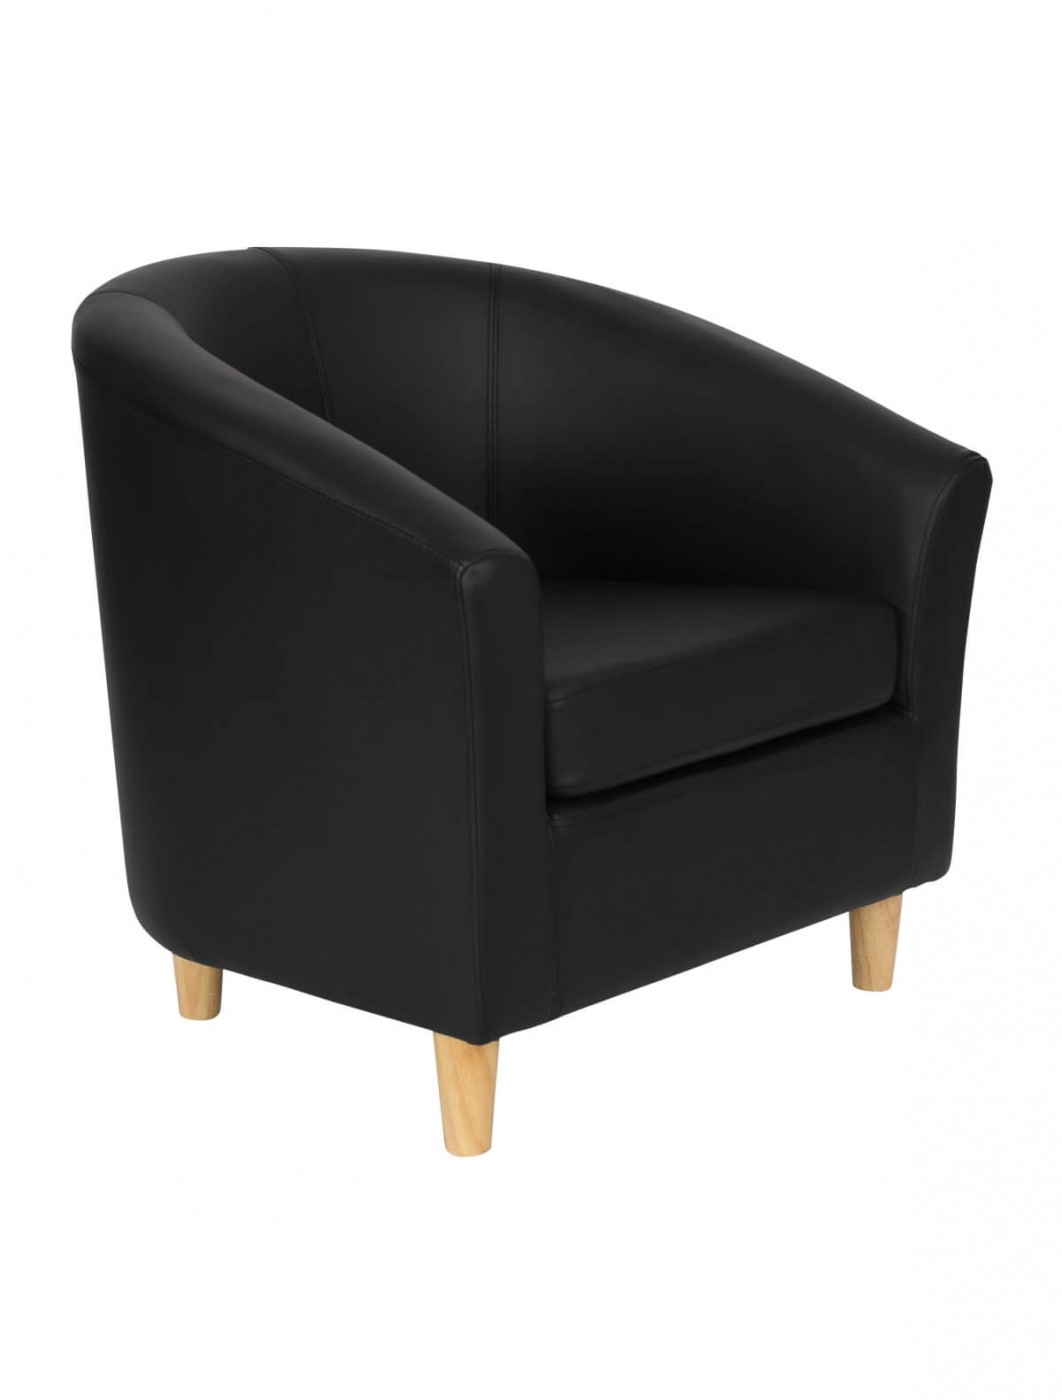 Armchair - PU Leather Tub Chair OF2201WL Reception Chairs | 121 ...